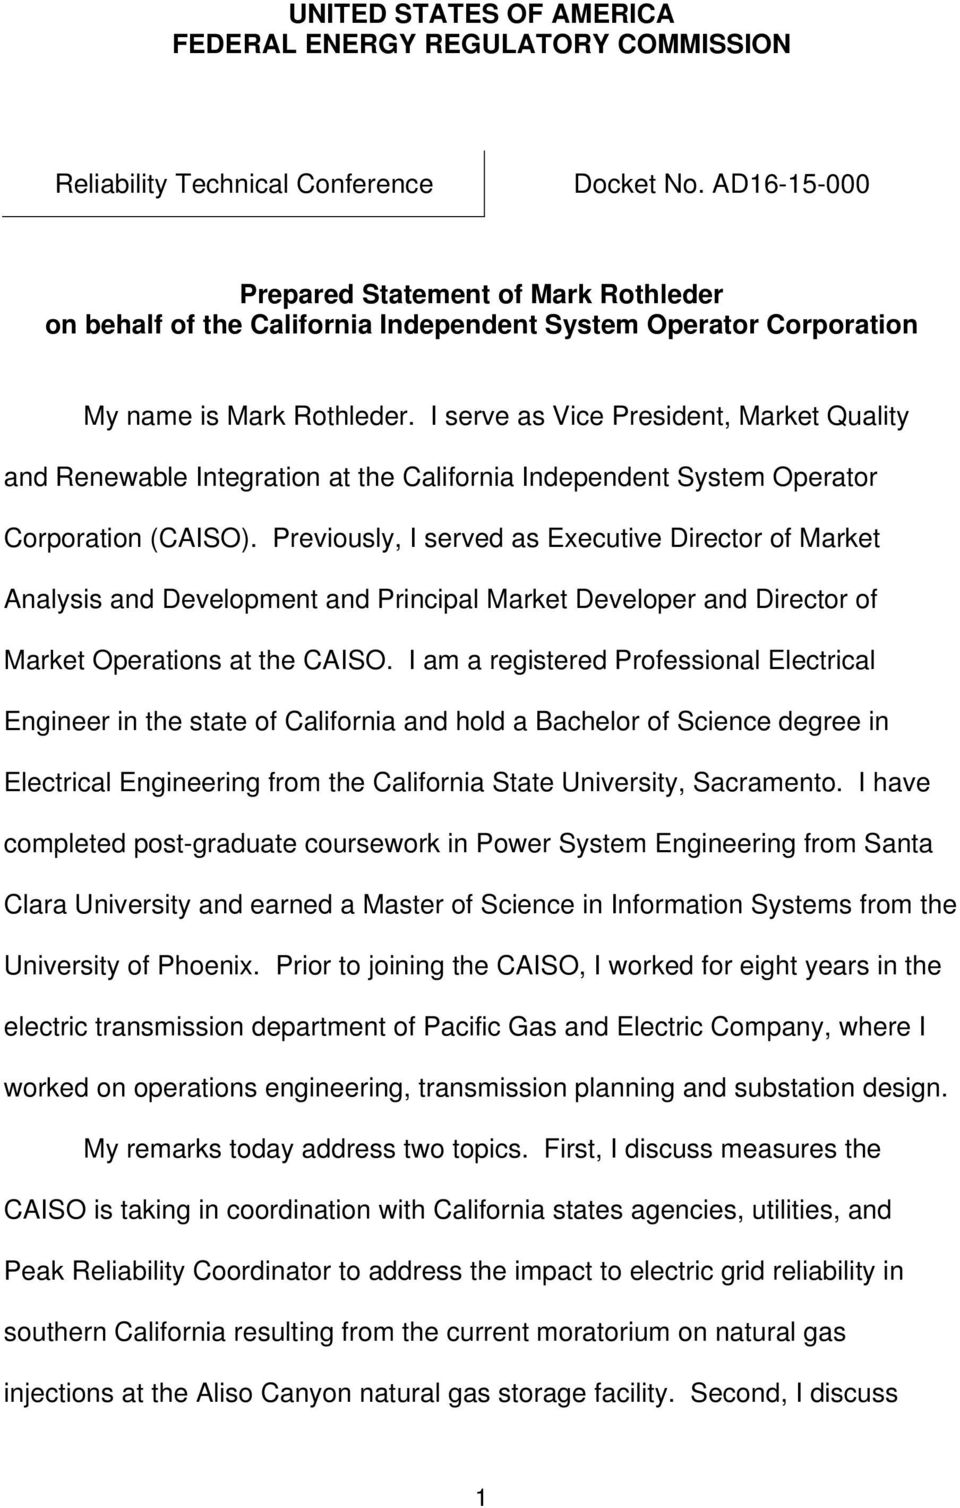 I serve as Vice President, Market Quality and Renewable Integration at the California Independent System Operator Corporation (CAISO).